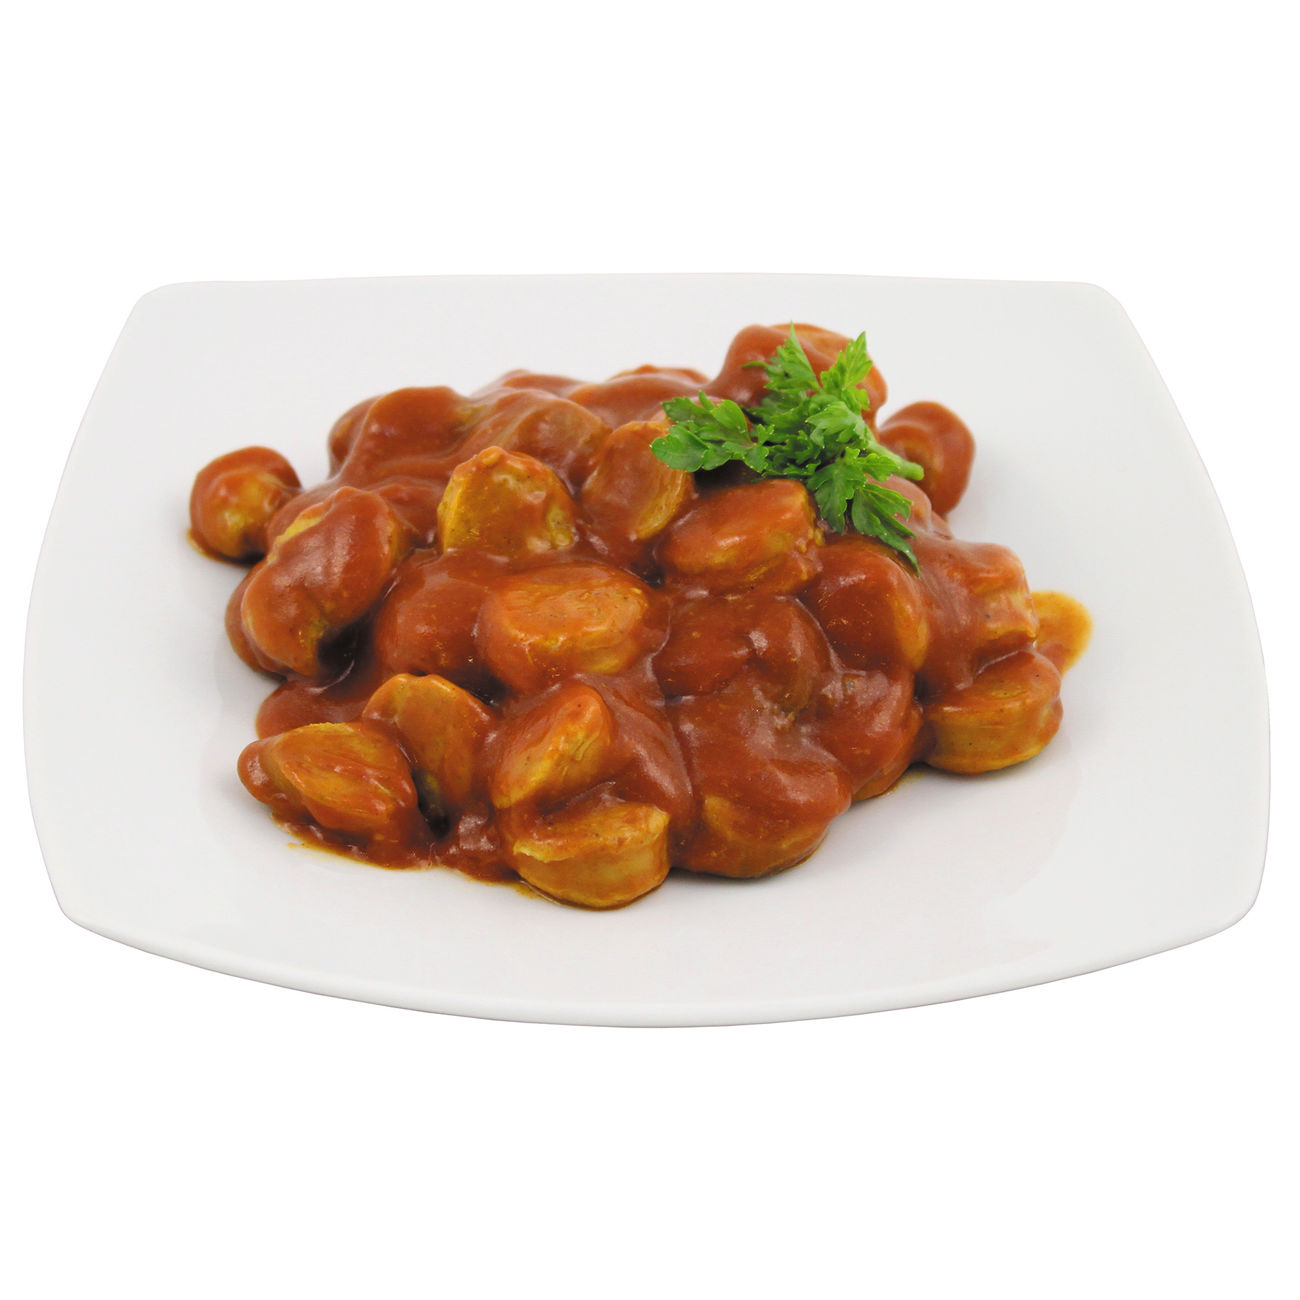 Outdoor-Mahlzeit Currywurst Dose 2